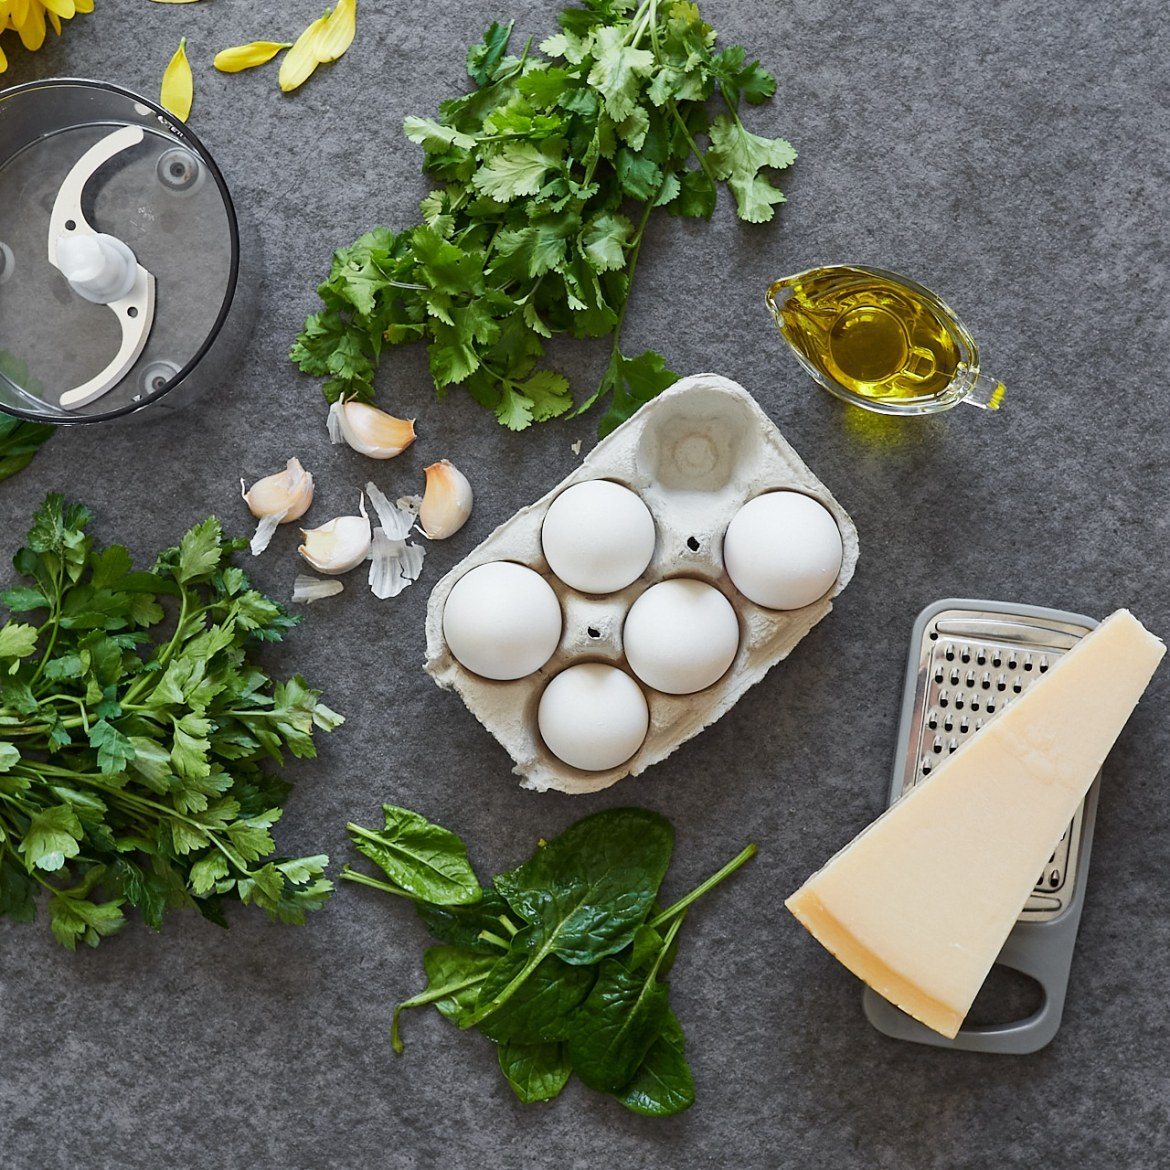 ingredients for chimichurri fried eggs